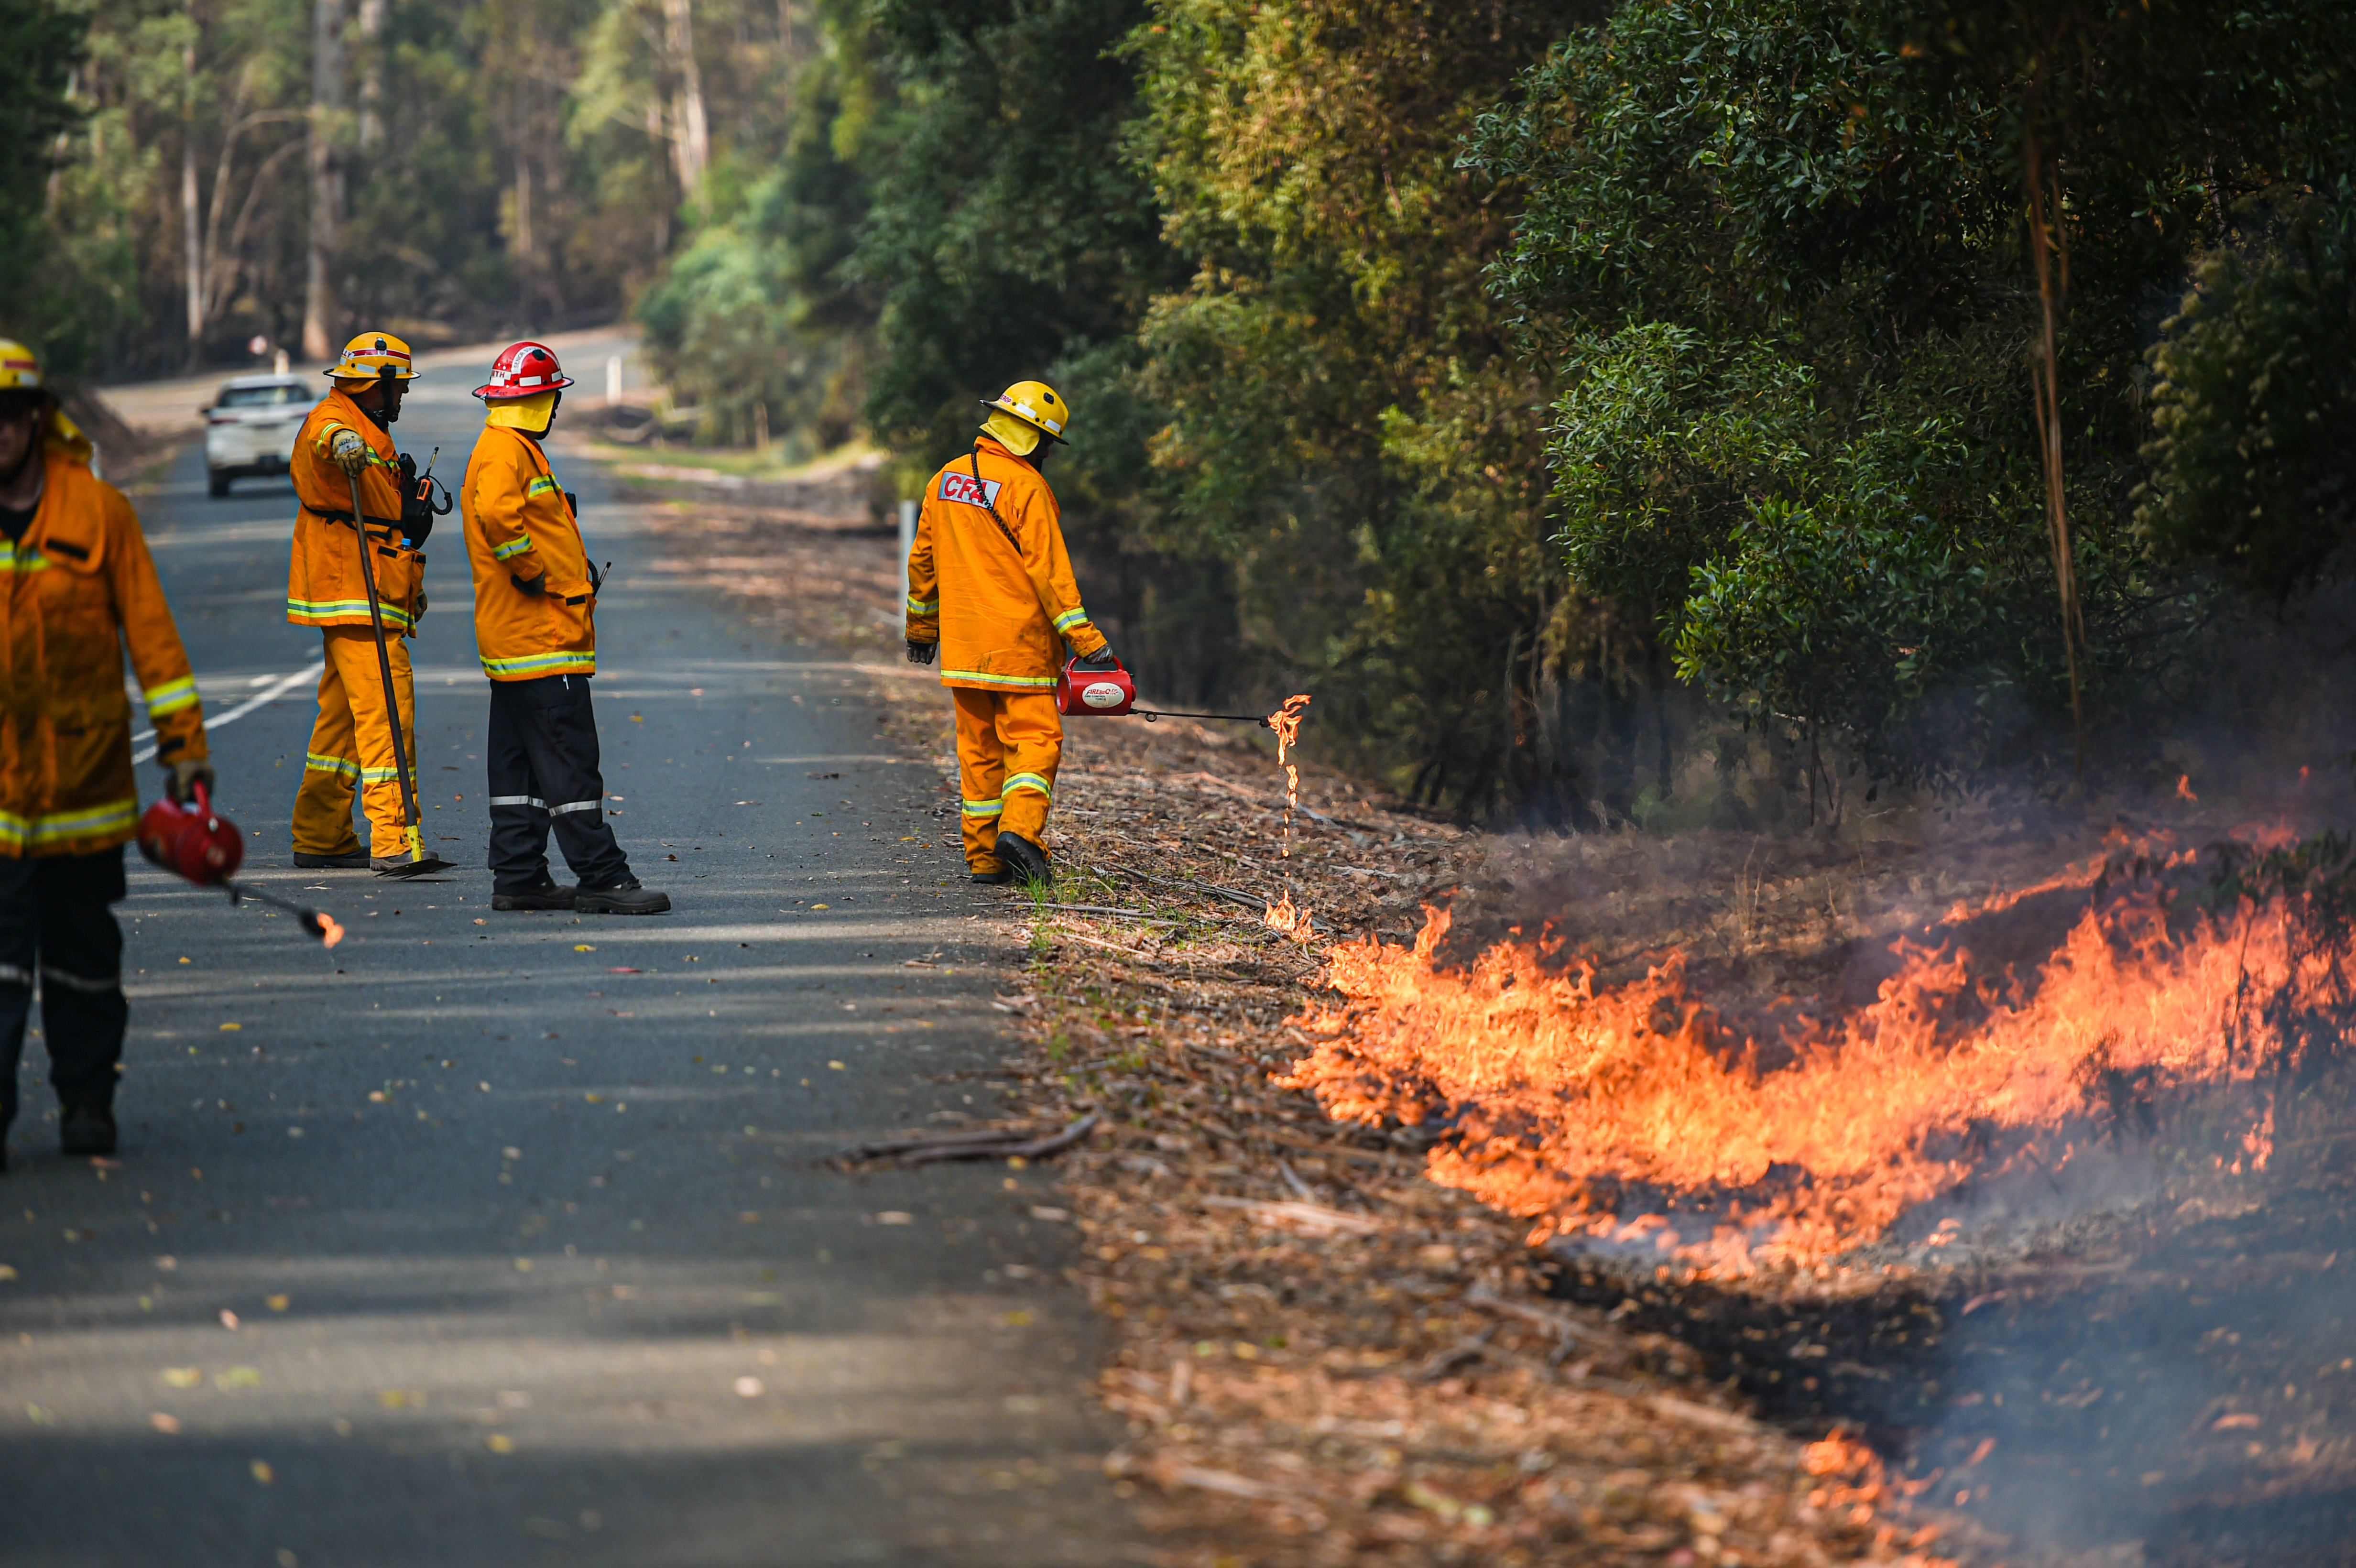 CFA strike teams performing controlled burning west of Corryong, Victoria.